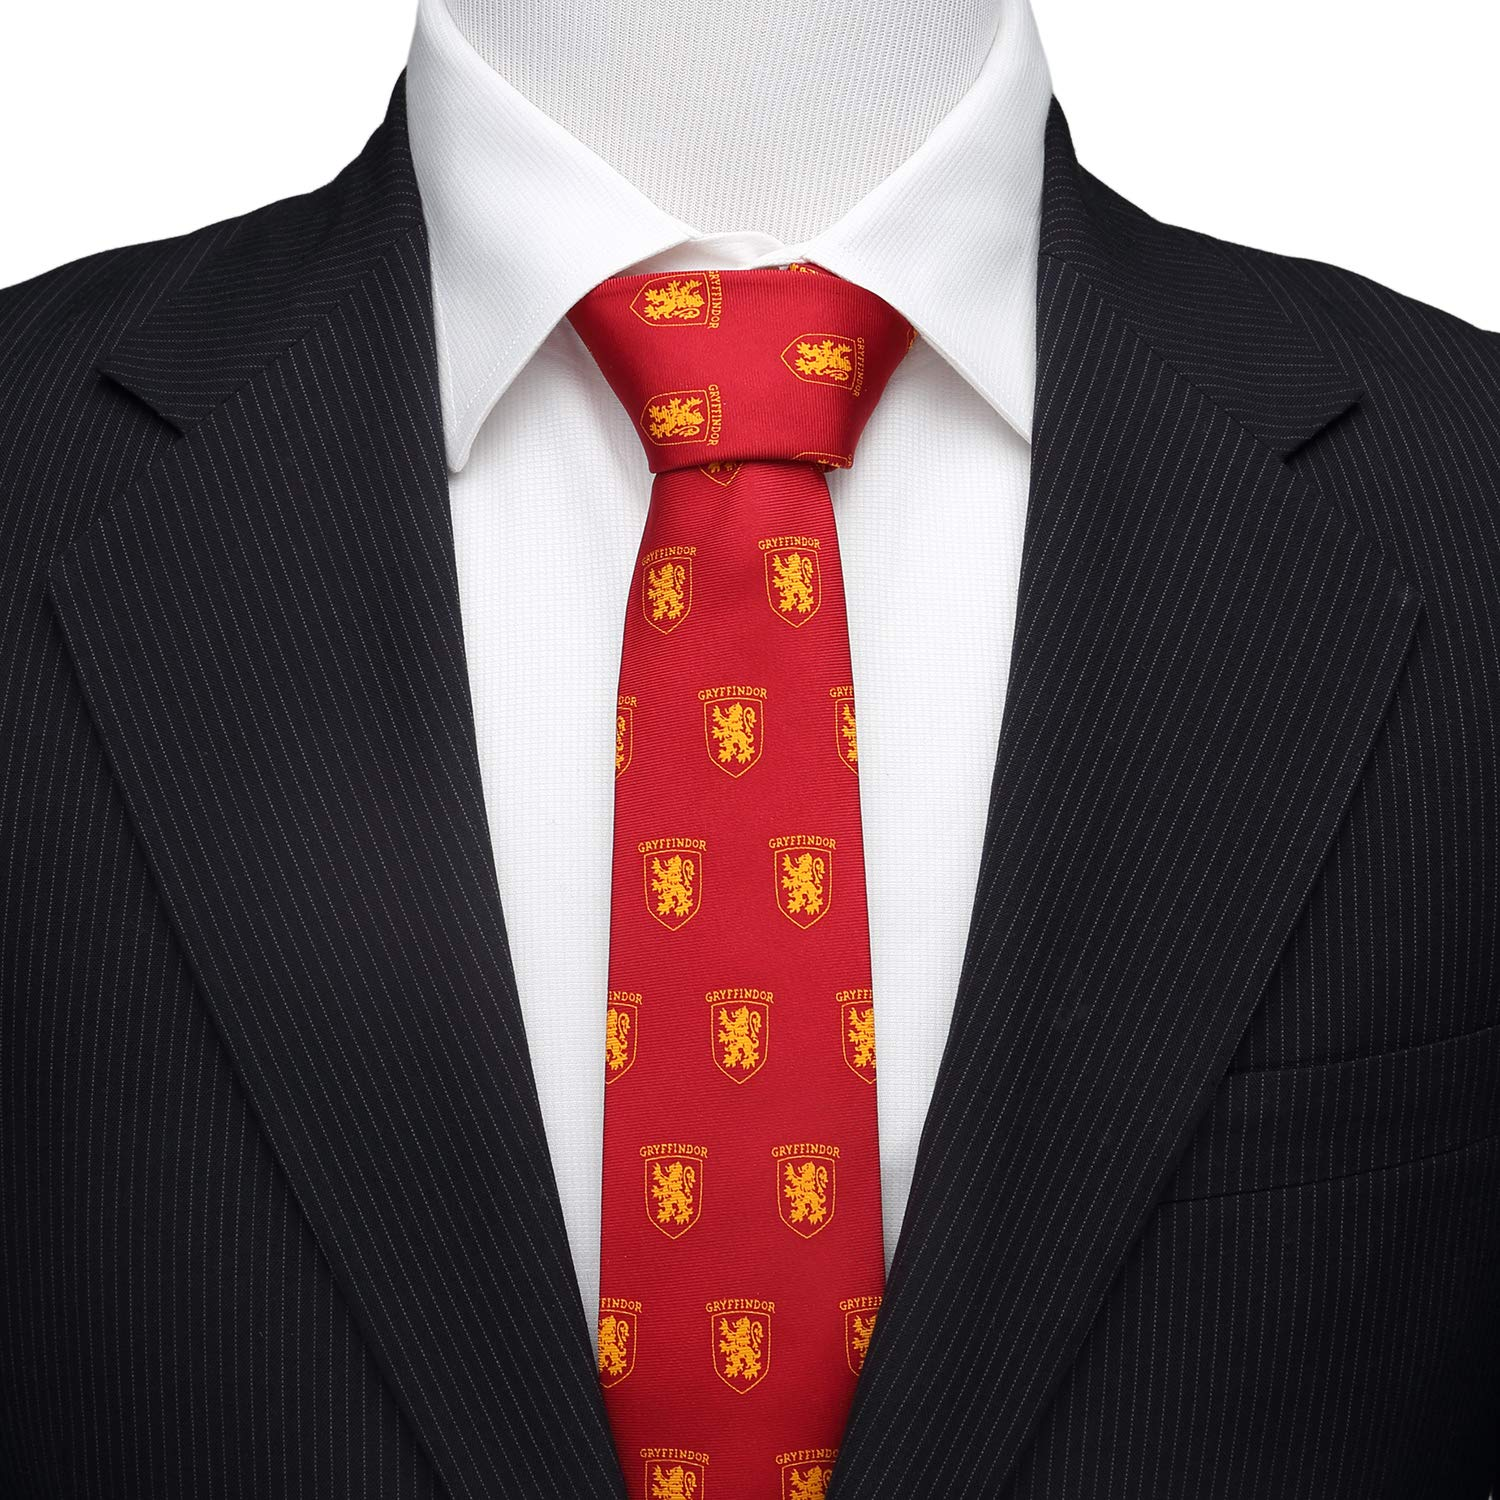 Corbata Gryffindor de Harry Potter, producto oficial: Amazon.es ...